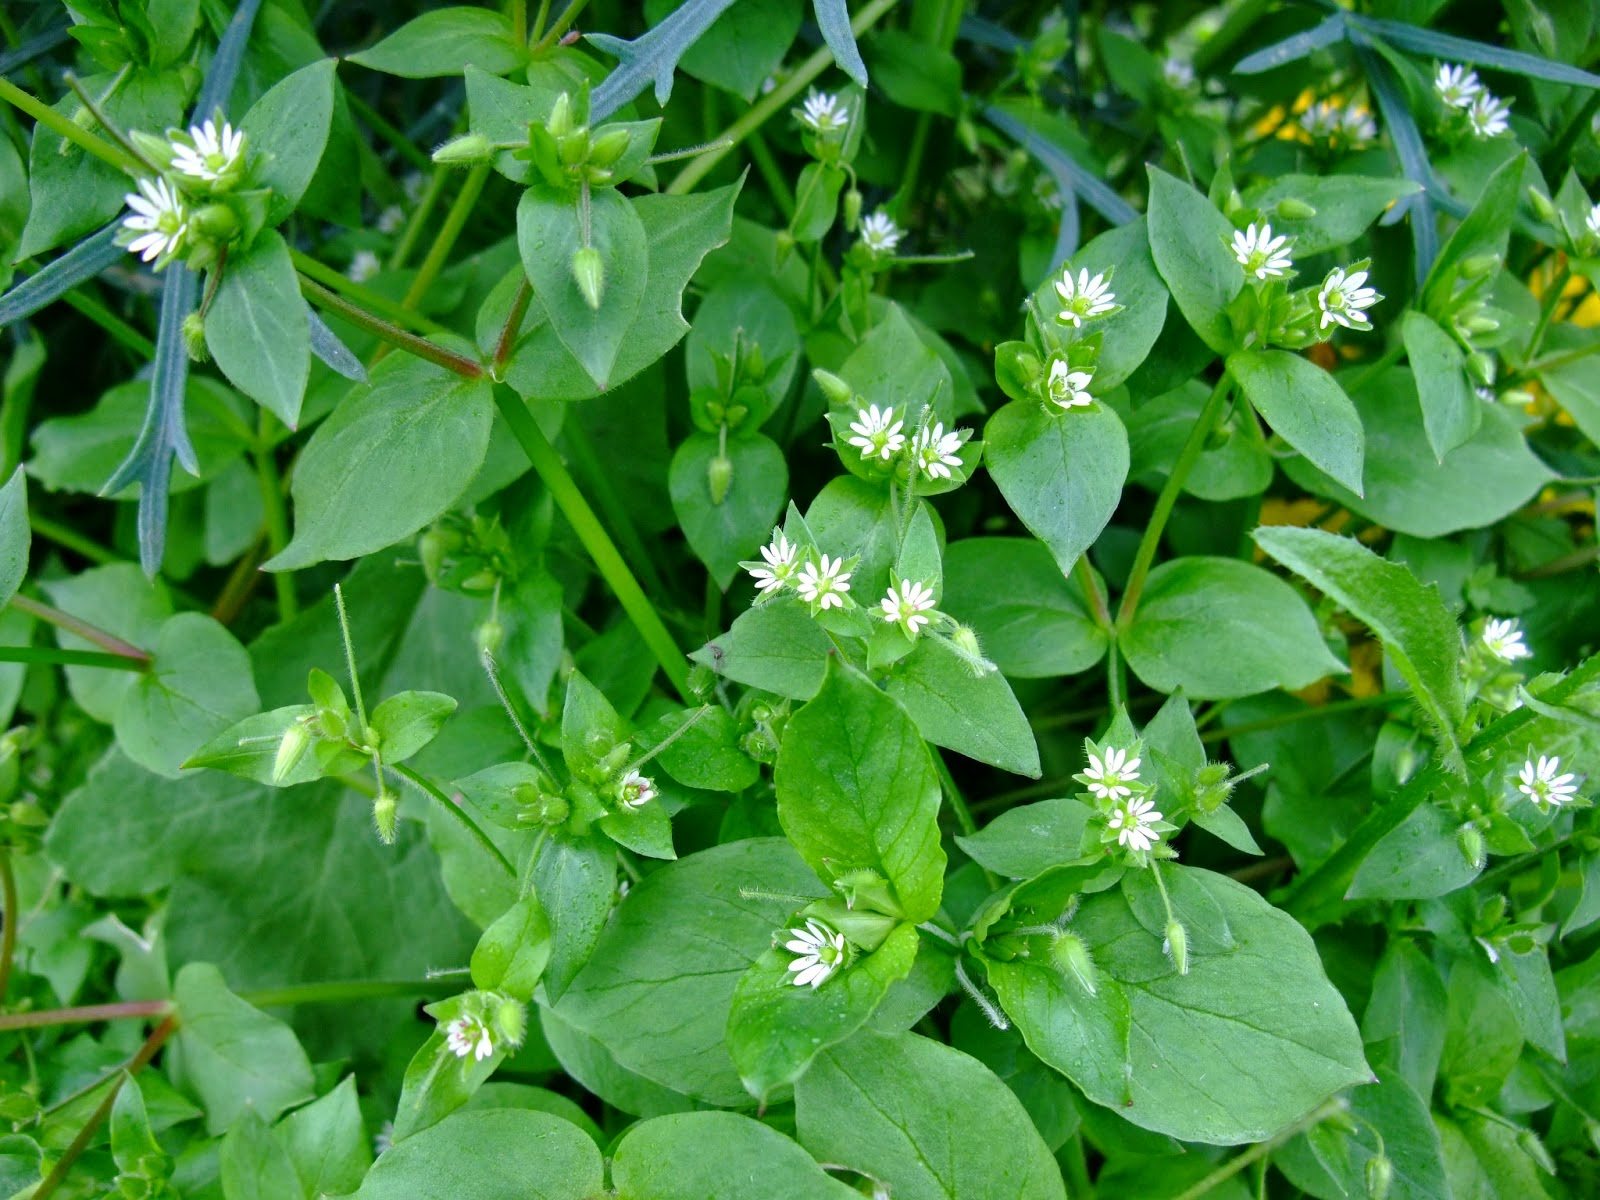 Benefits Of Chickweed (Stellaria Media) Herb For Health